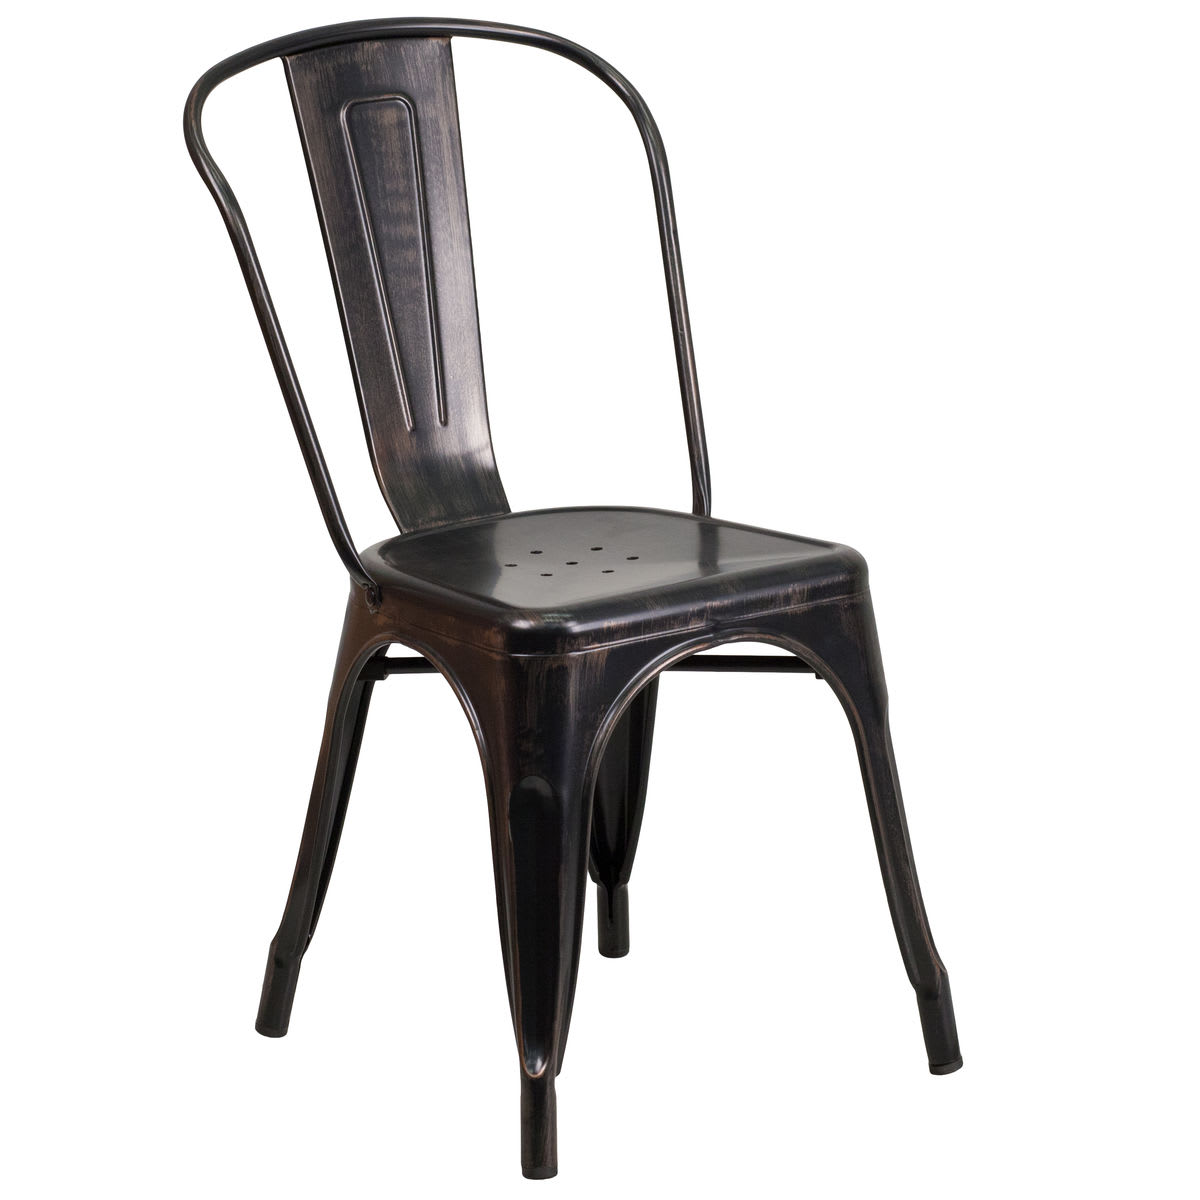 Bistro Style Metal Chair in Antique Black and Gold